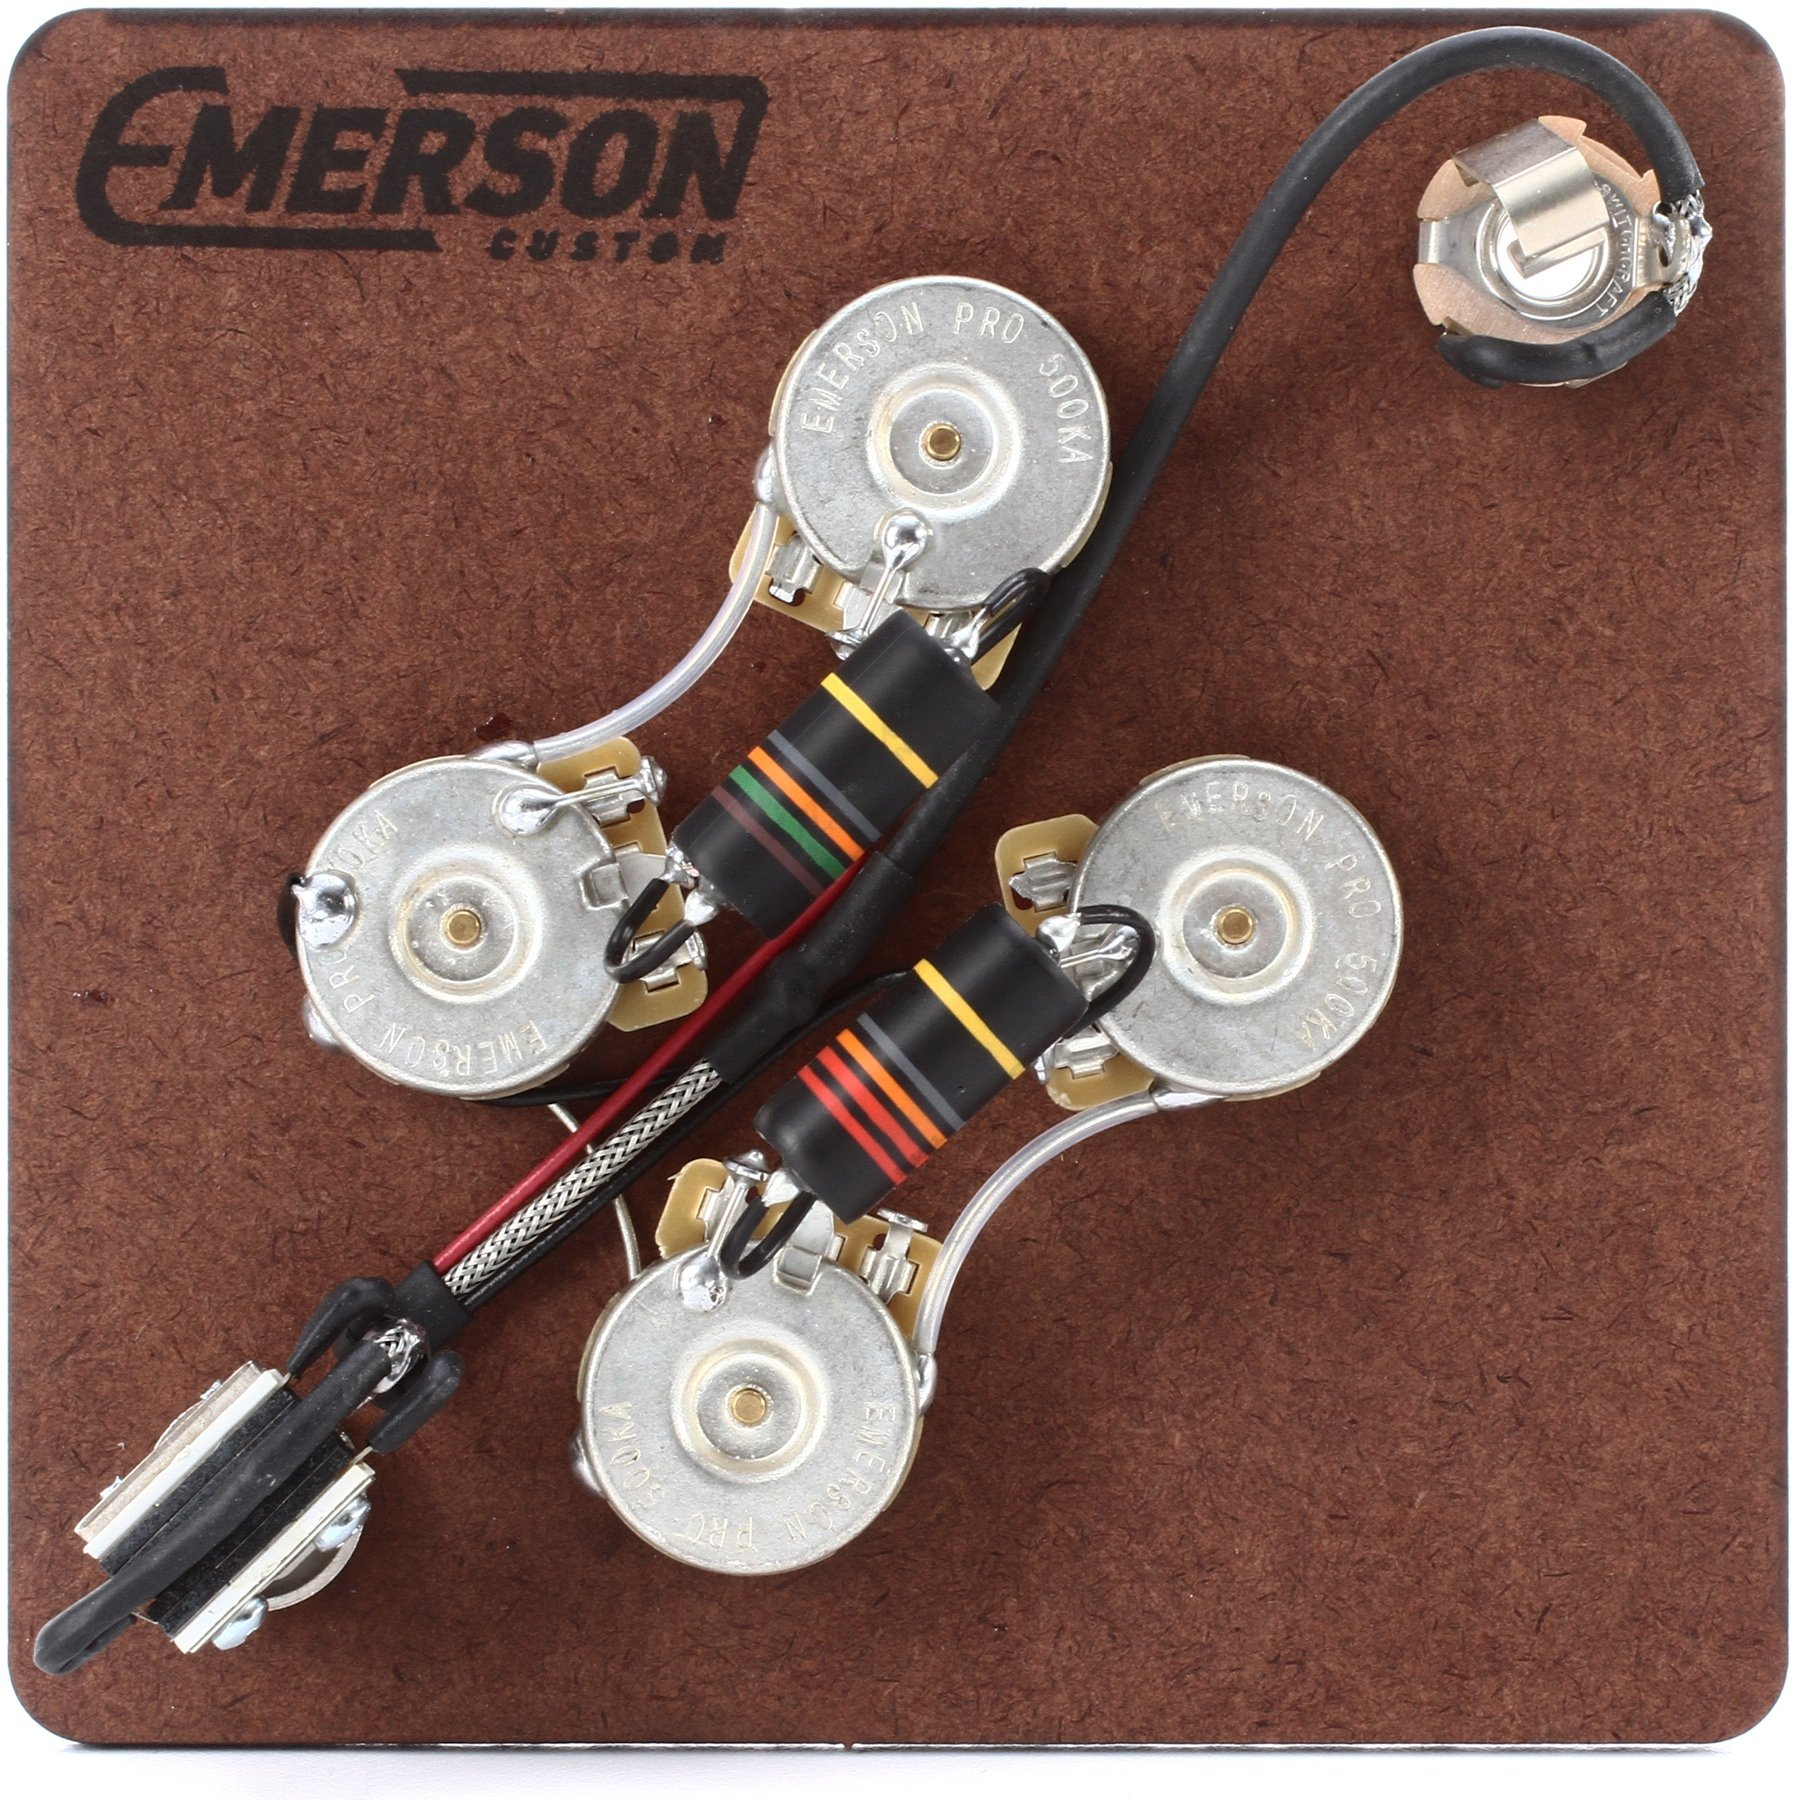 emerson custom prewired kit for gibson sg guitars sweetwater Emerson Pre Wired 5 Way Strat Switch Wiring Diagram emerson custom prewired kit for gibson sg guitars image 1